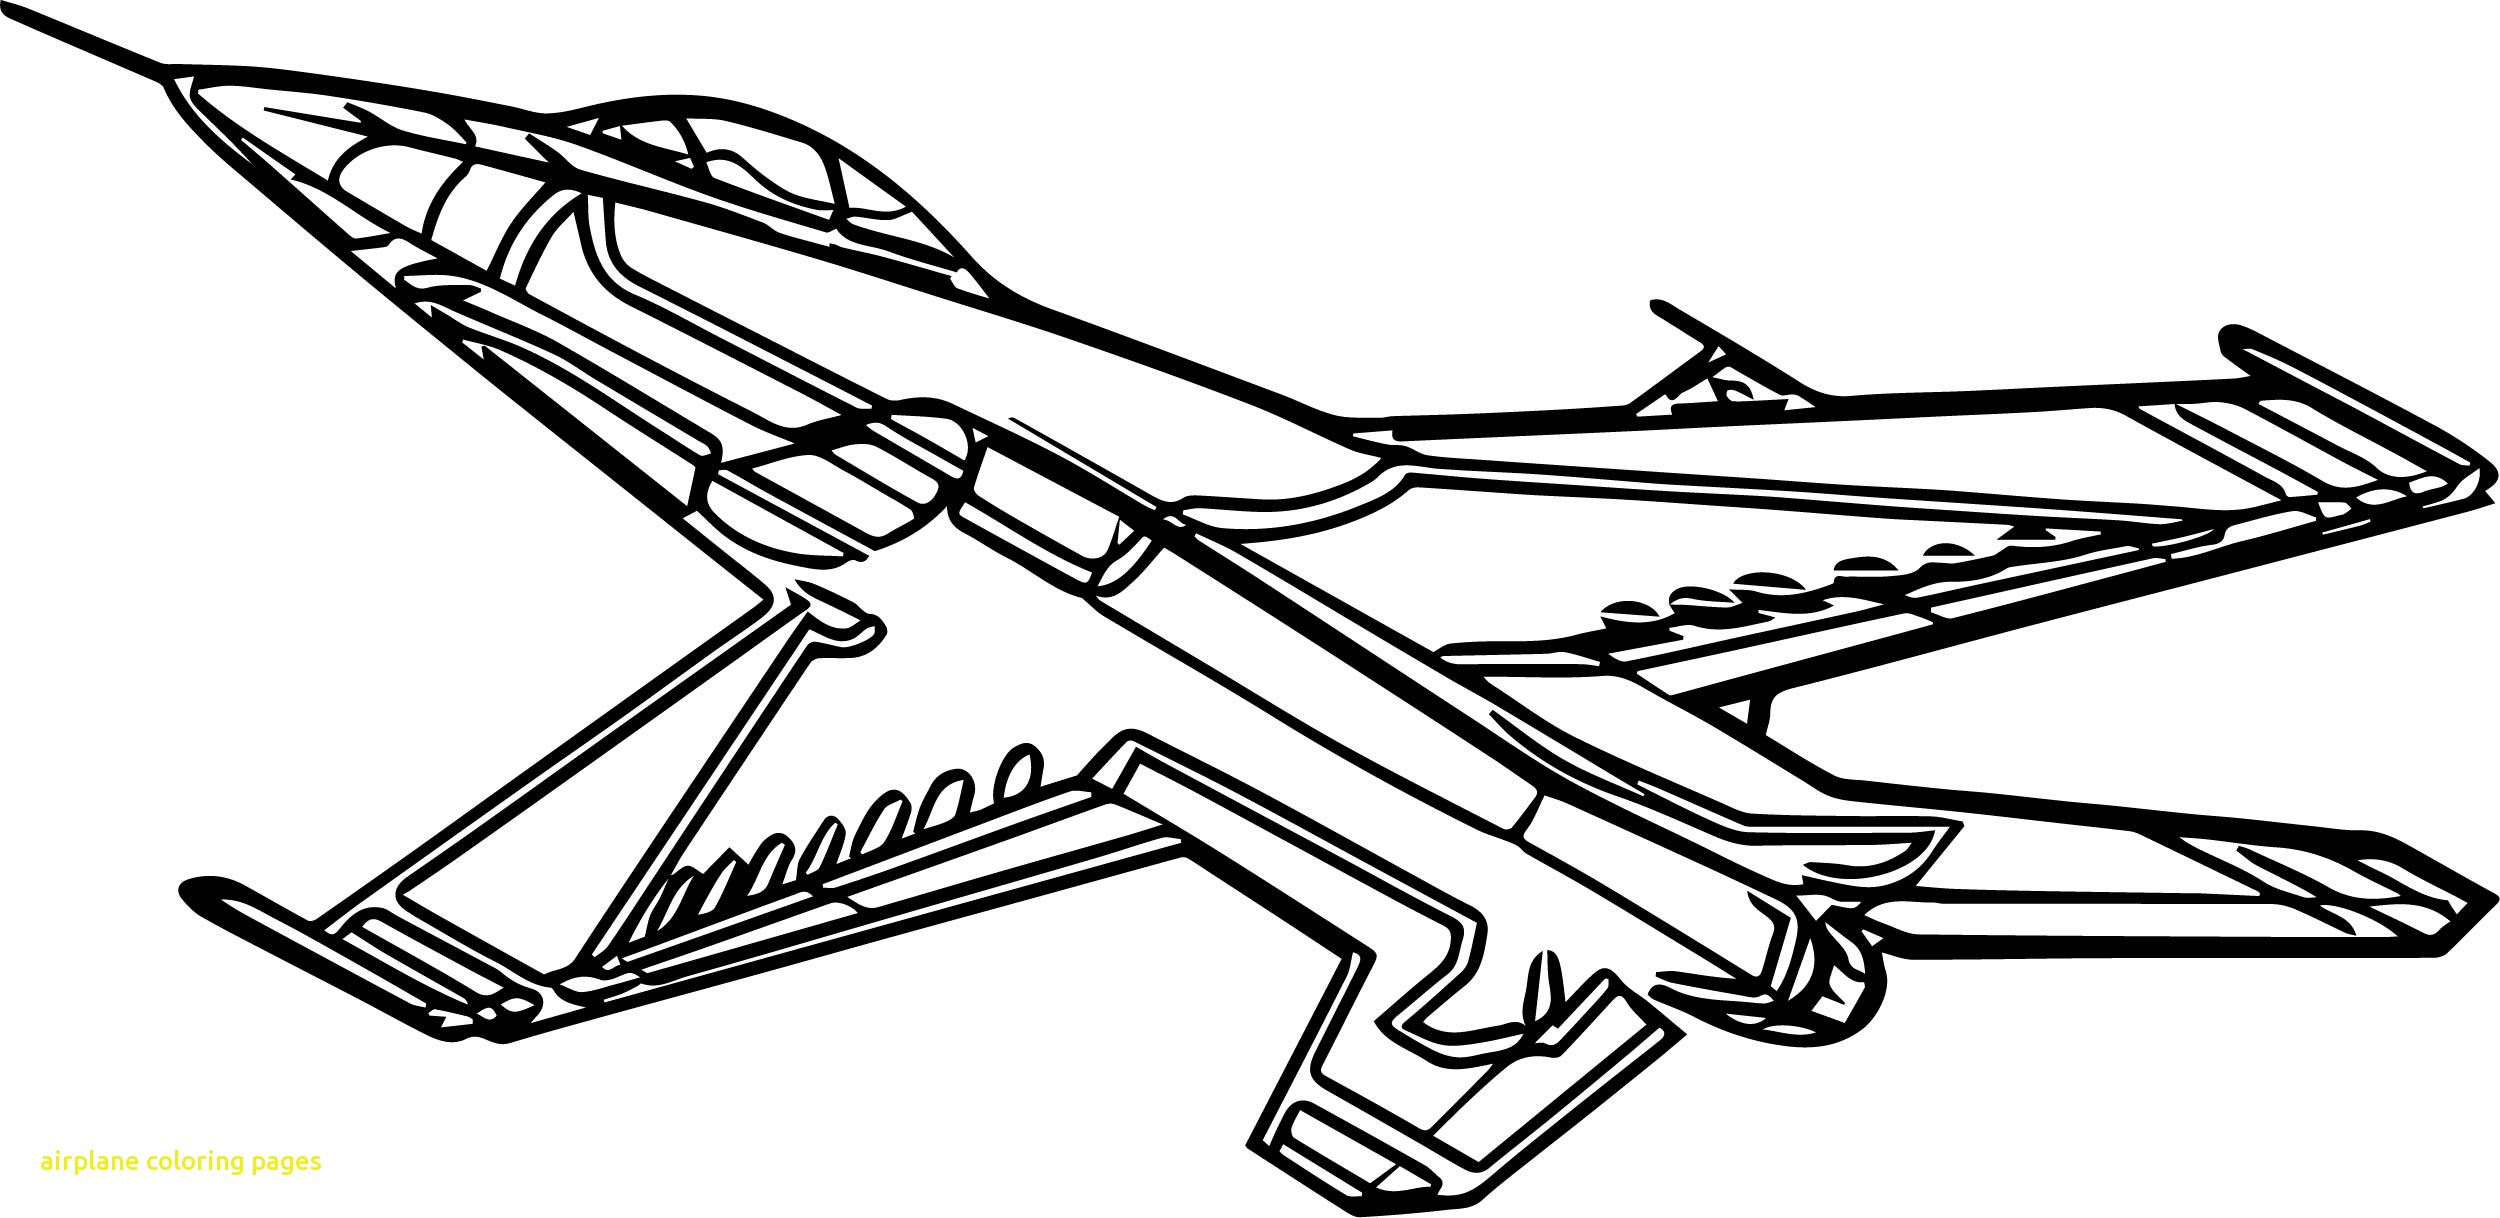 printable airplane coloring pages free printable airplane coloring pages for kids cool2bkids printable pages coloring airplane